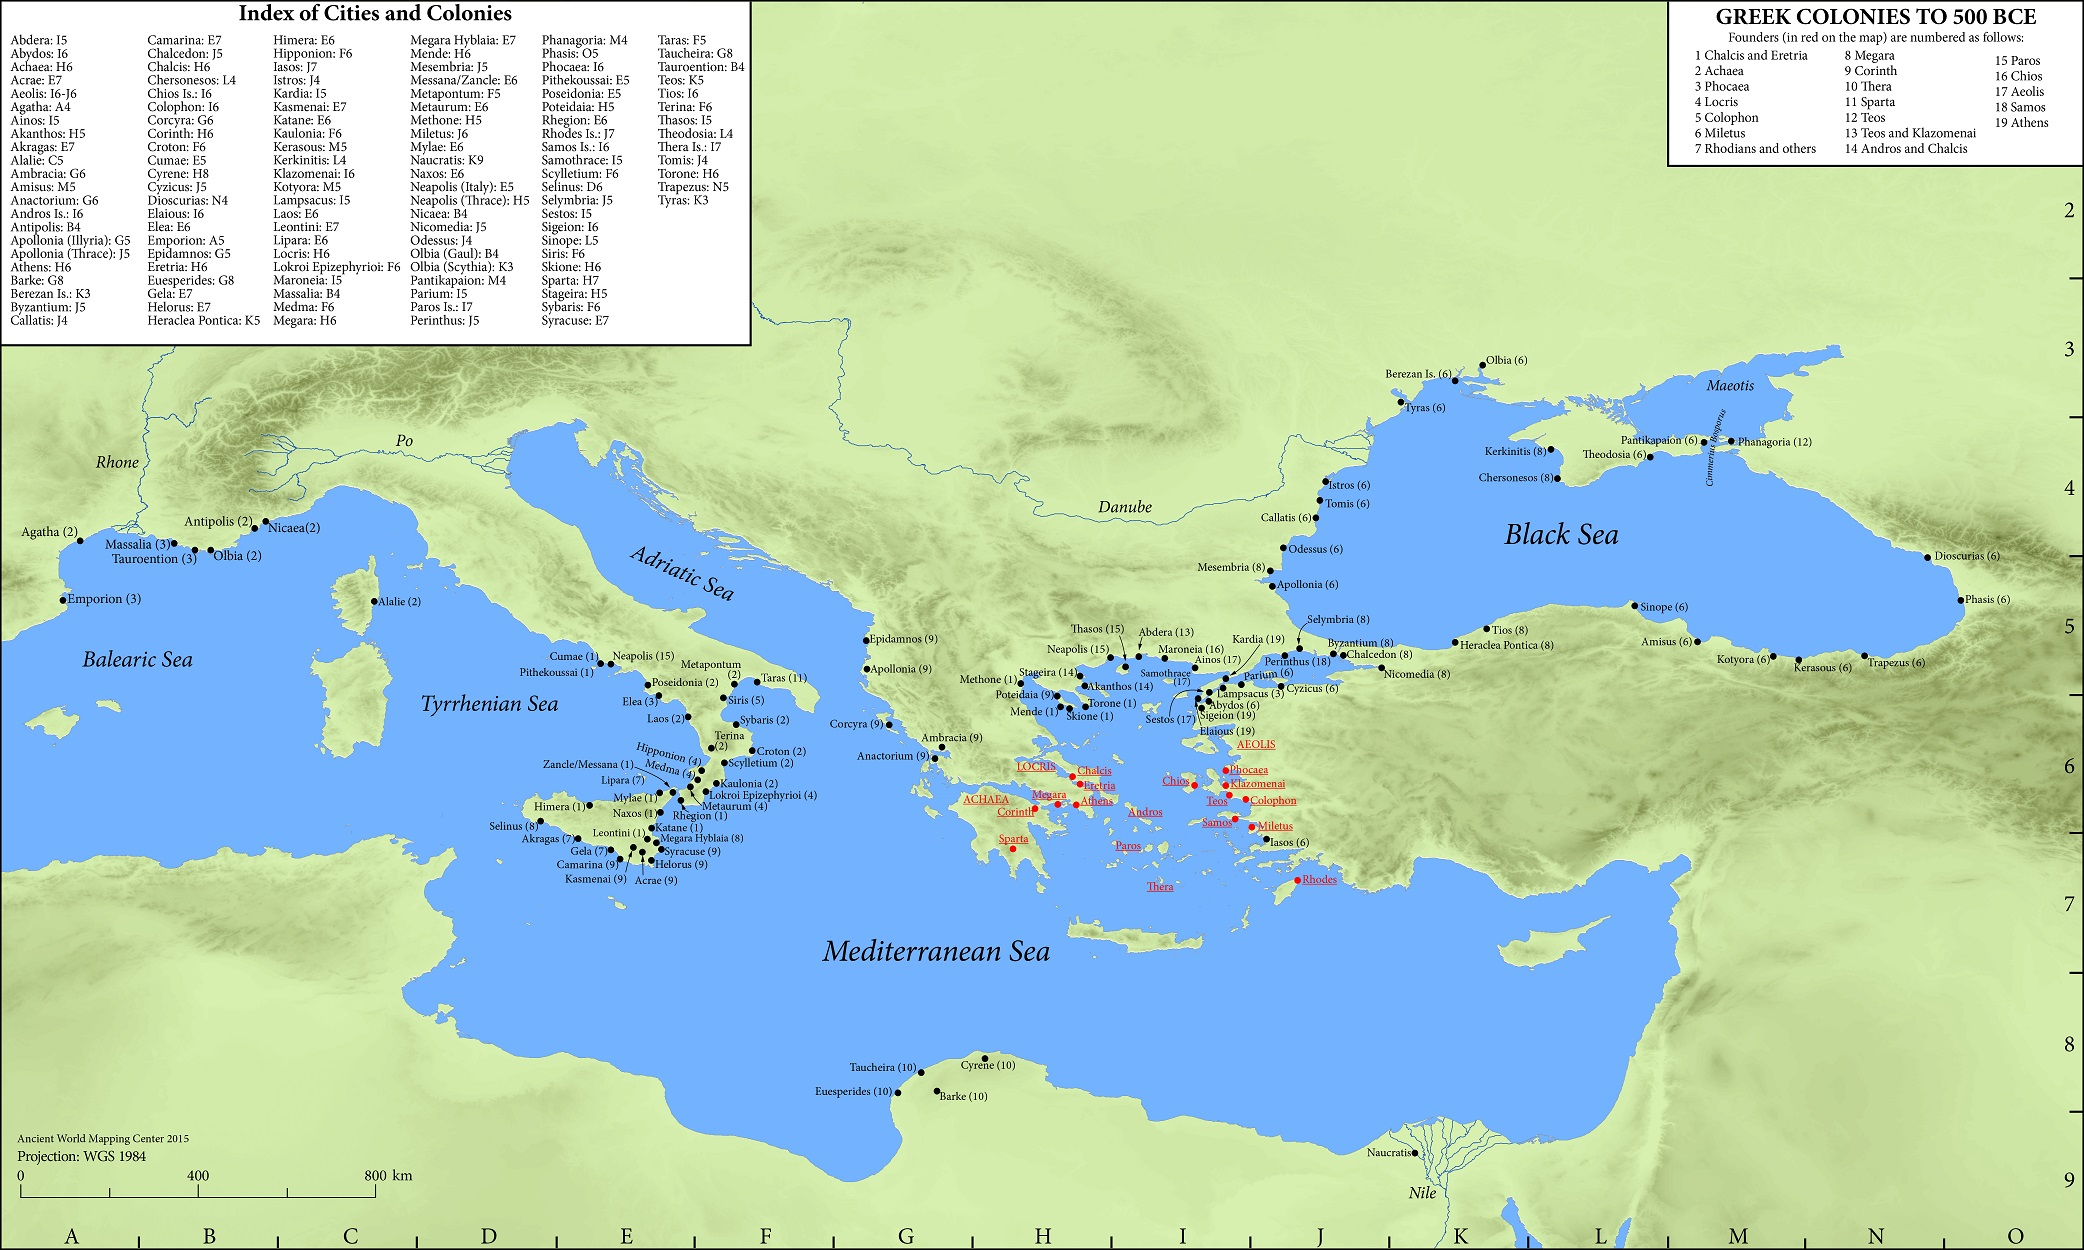 greek colonies to  bce. maps of the ancient world  oxford classical dictionary